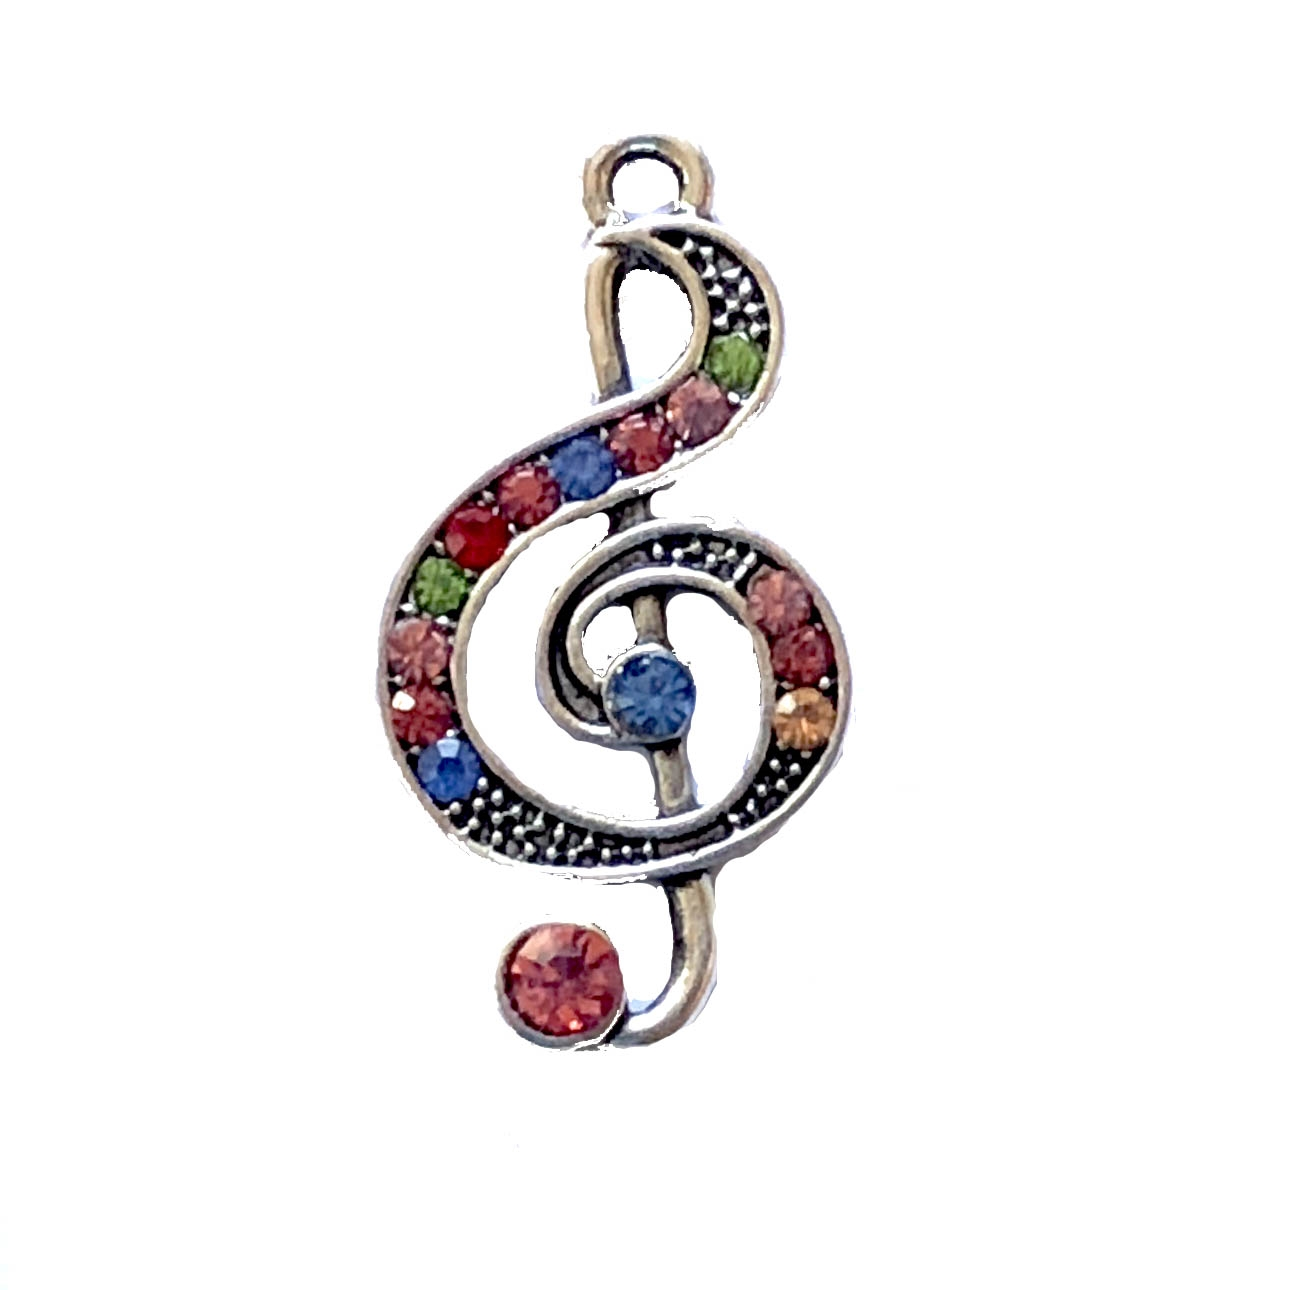 Silvertone treble clef, music charm, 07889, crystals, multi-color crystals, music notes, music, silvertone, pendant, music pendant, charm, music charm, bsue boutiques, jewelry supplies, silver